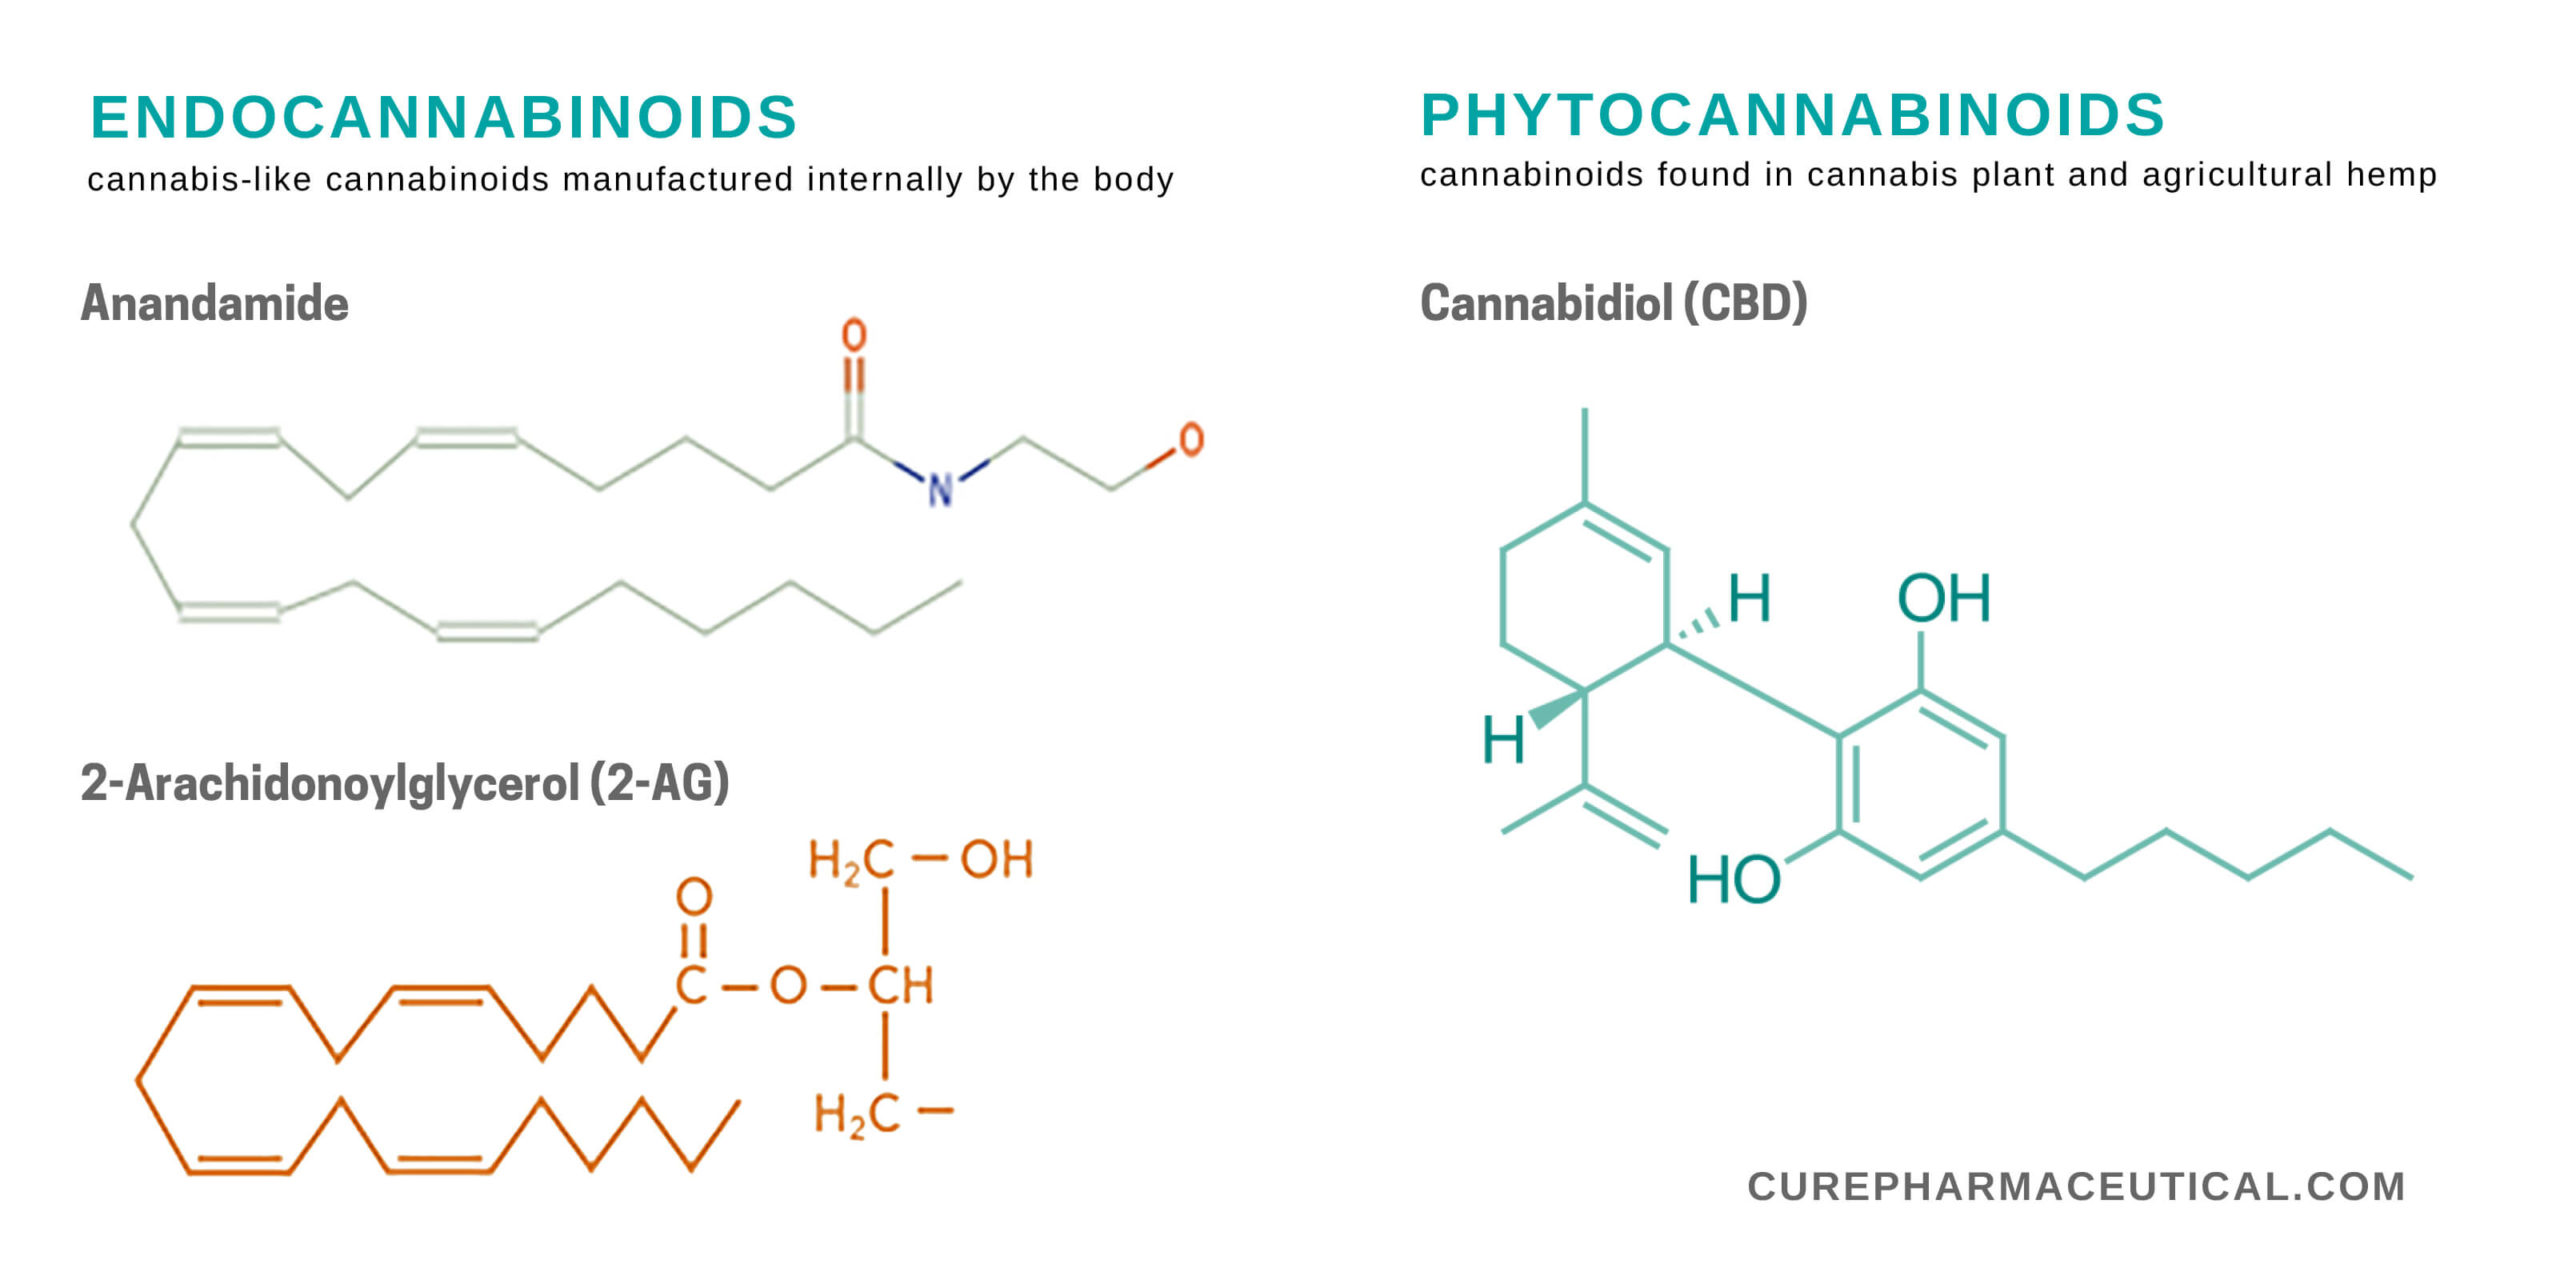 The Role of the Endocannabinoid System in the Human Body